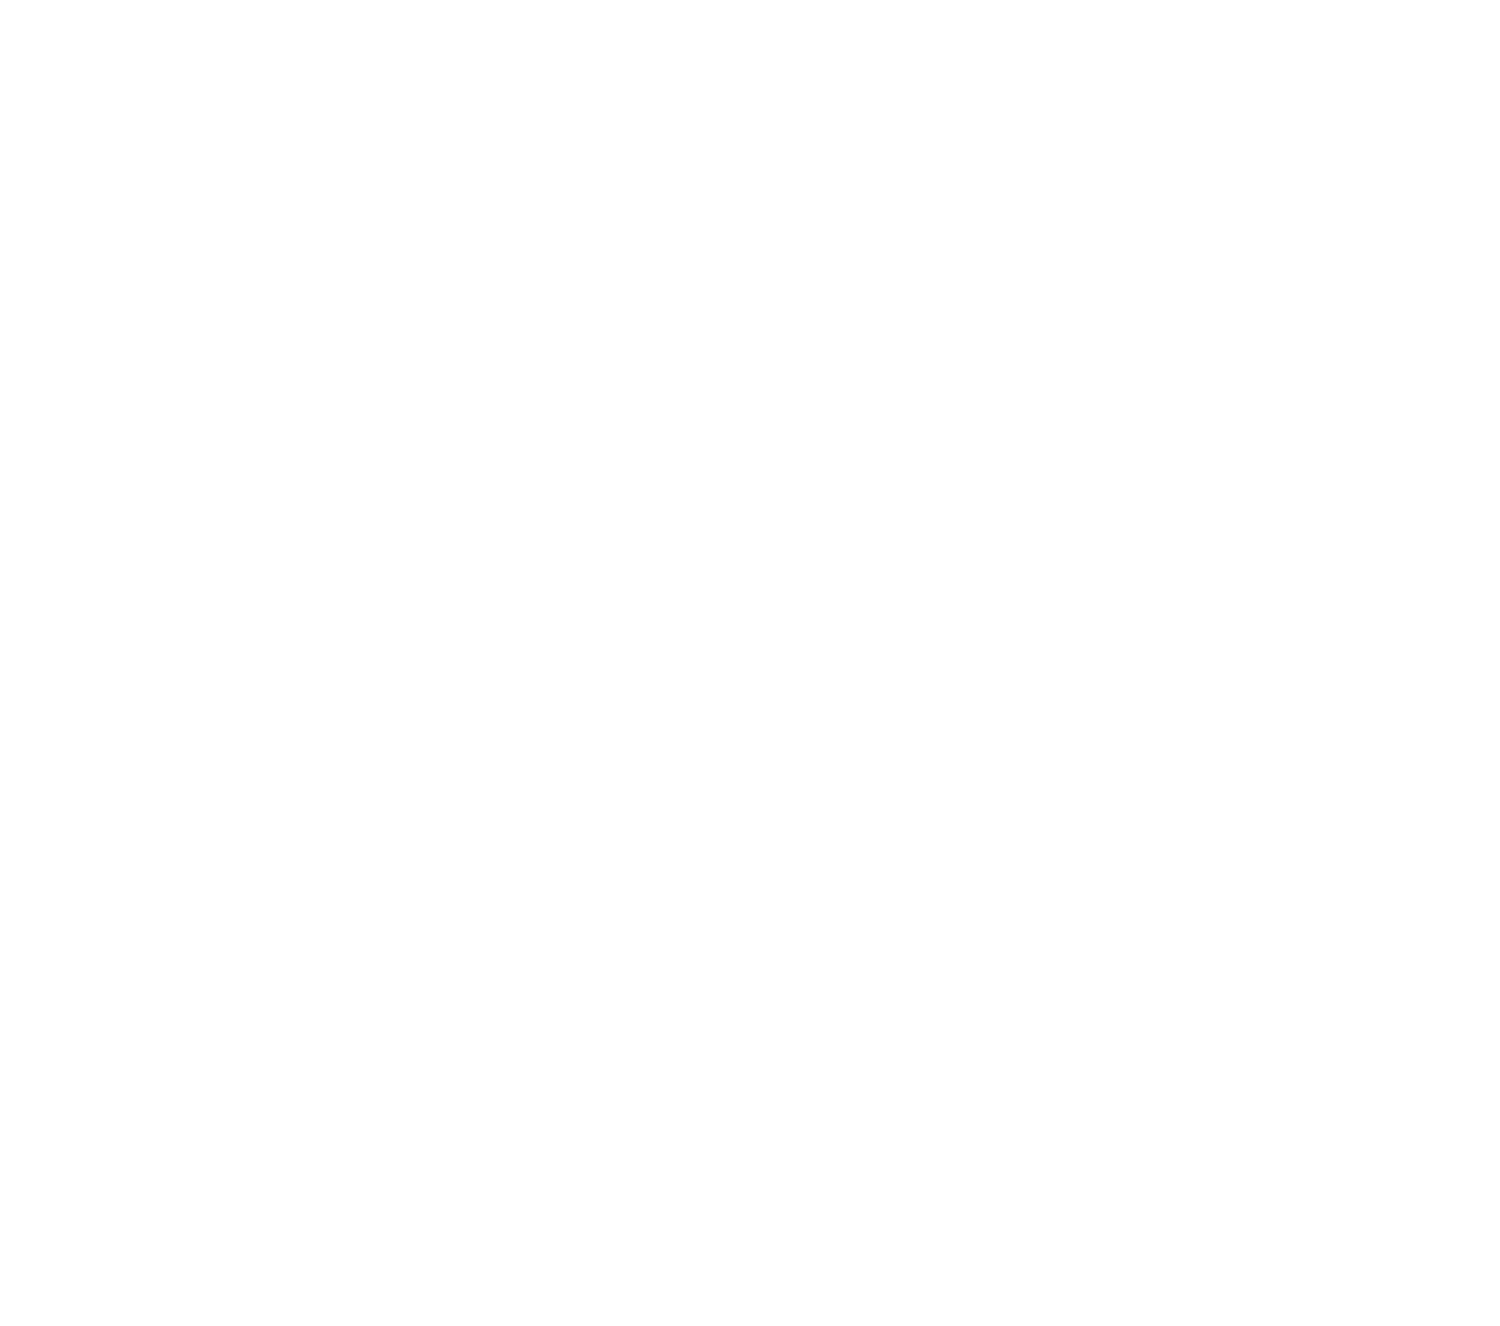 Tight Five